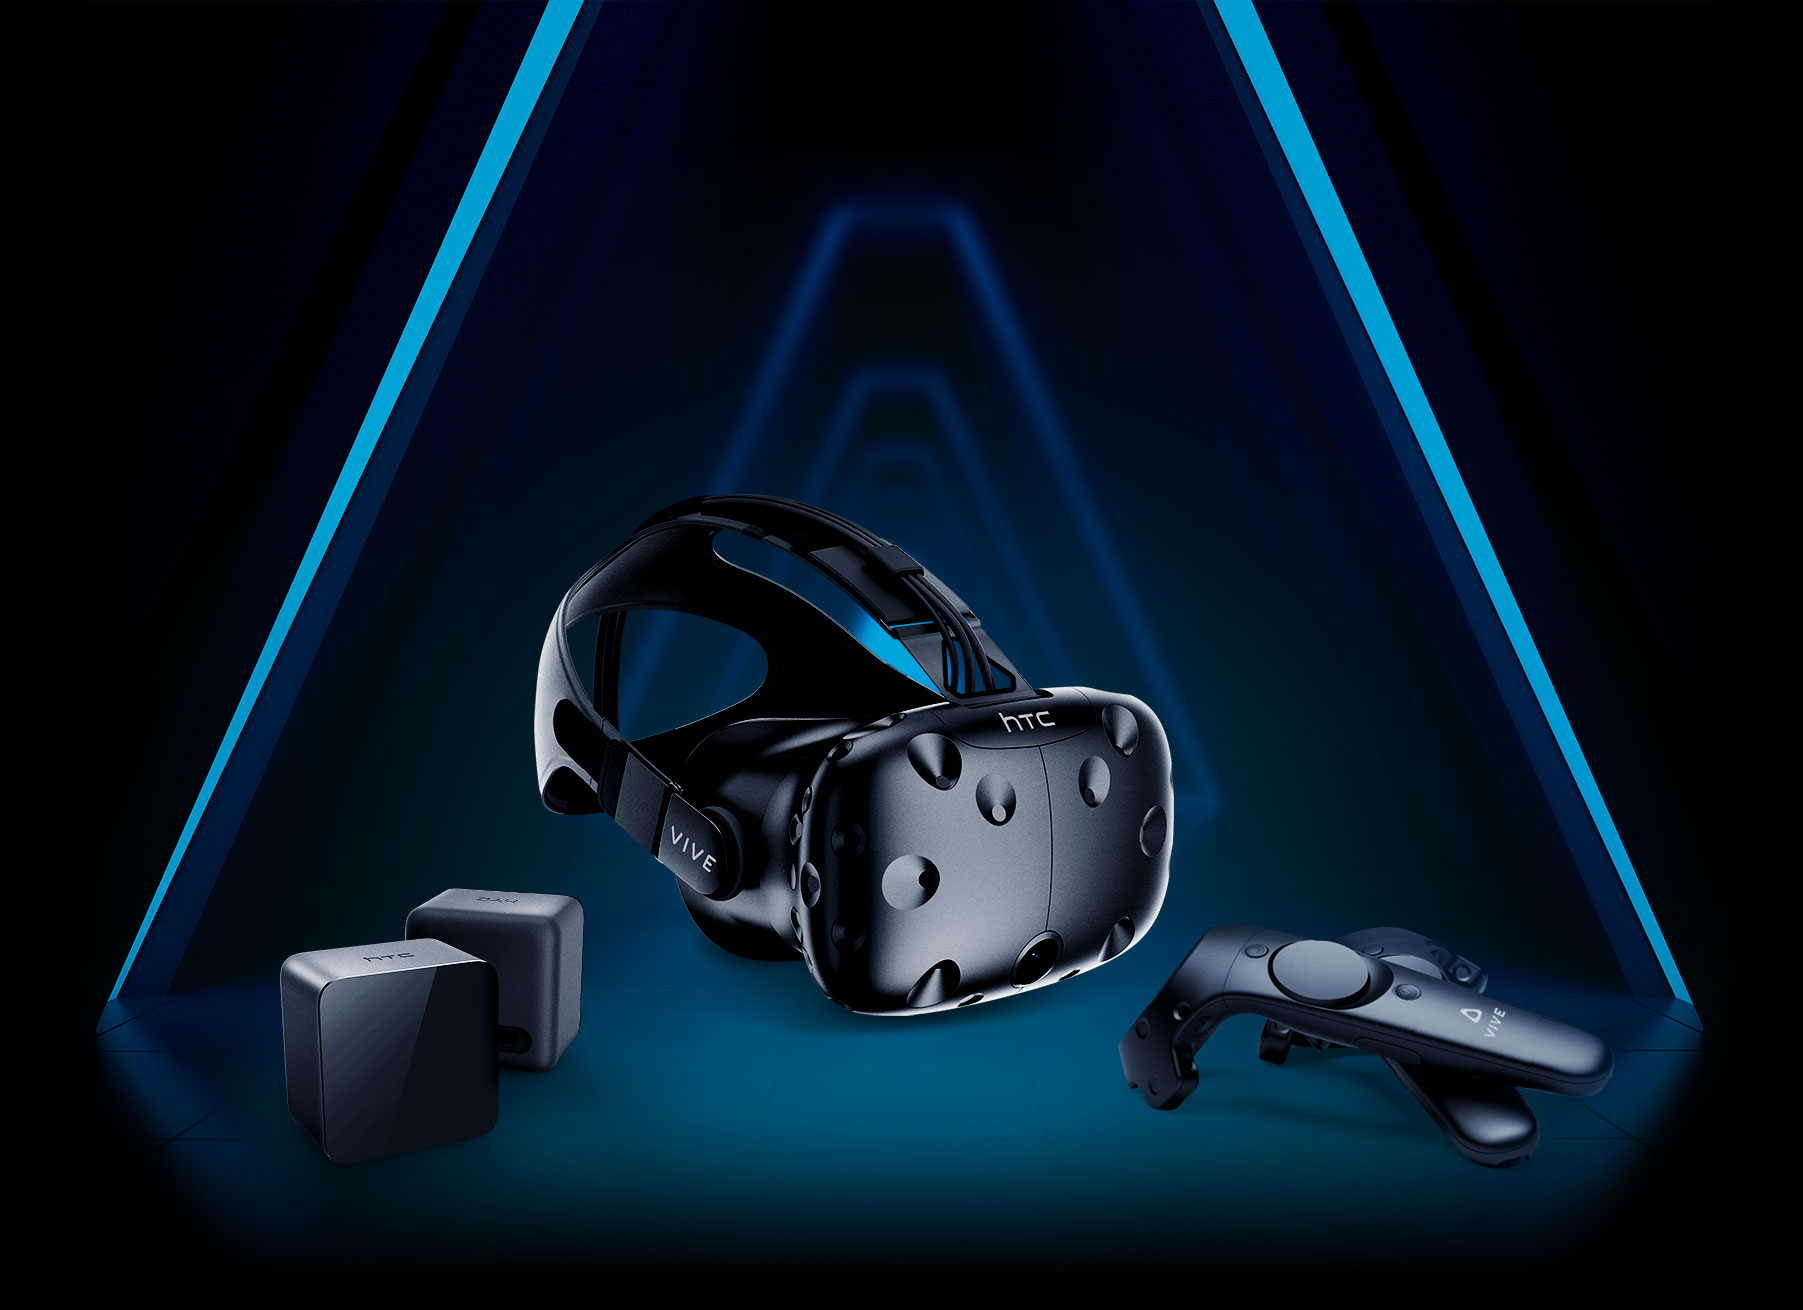 VIVE Headset, Base Stations, and Controllers